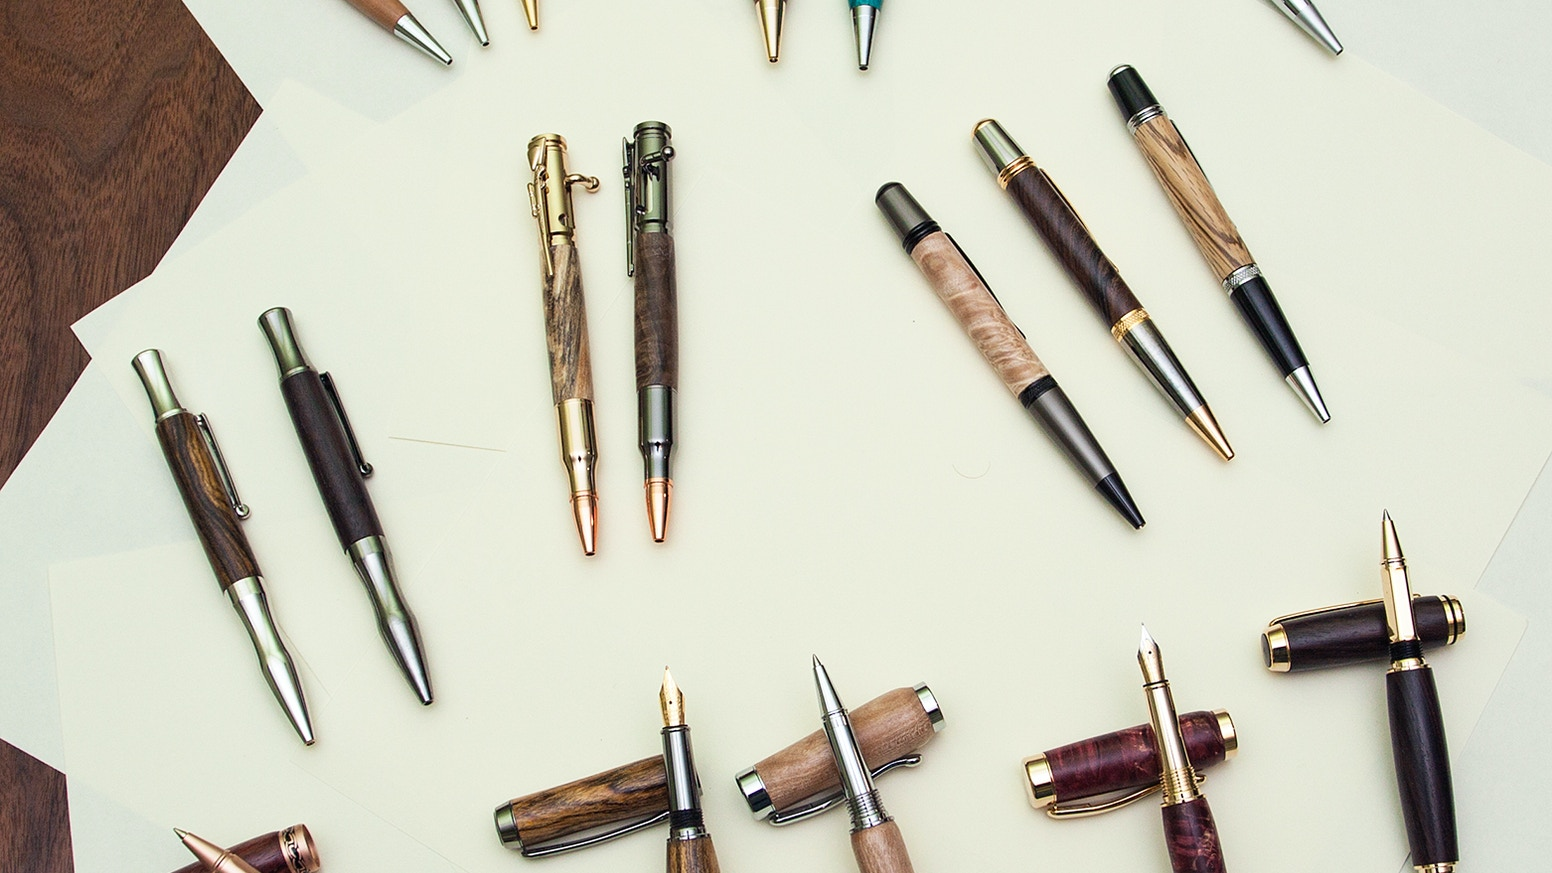 Handcrafted Original Pens - Inspired by Colorado's beauty by Marc